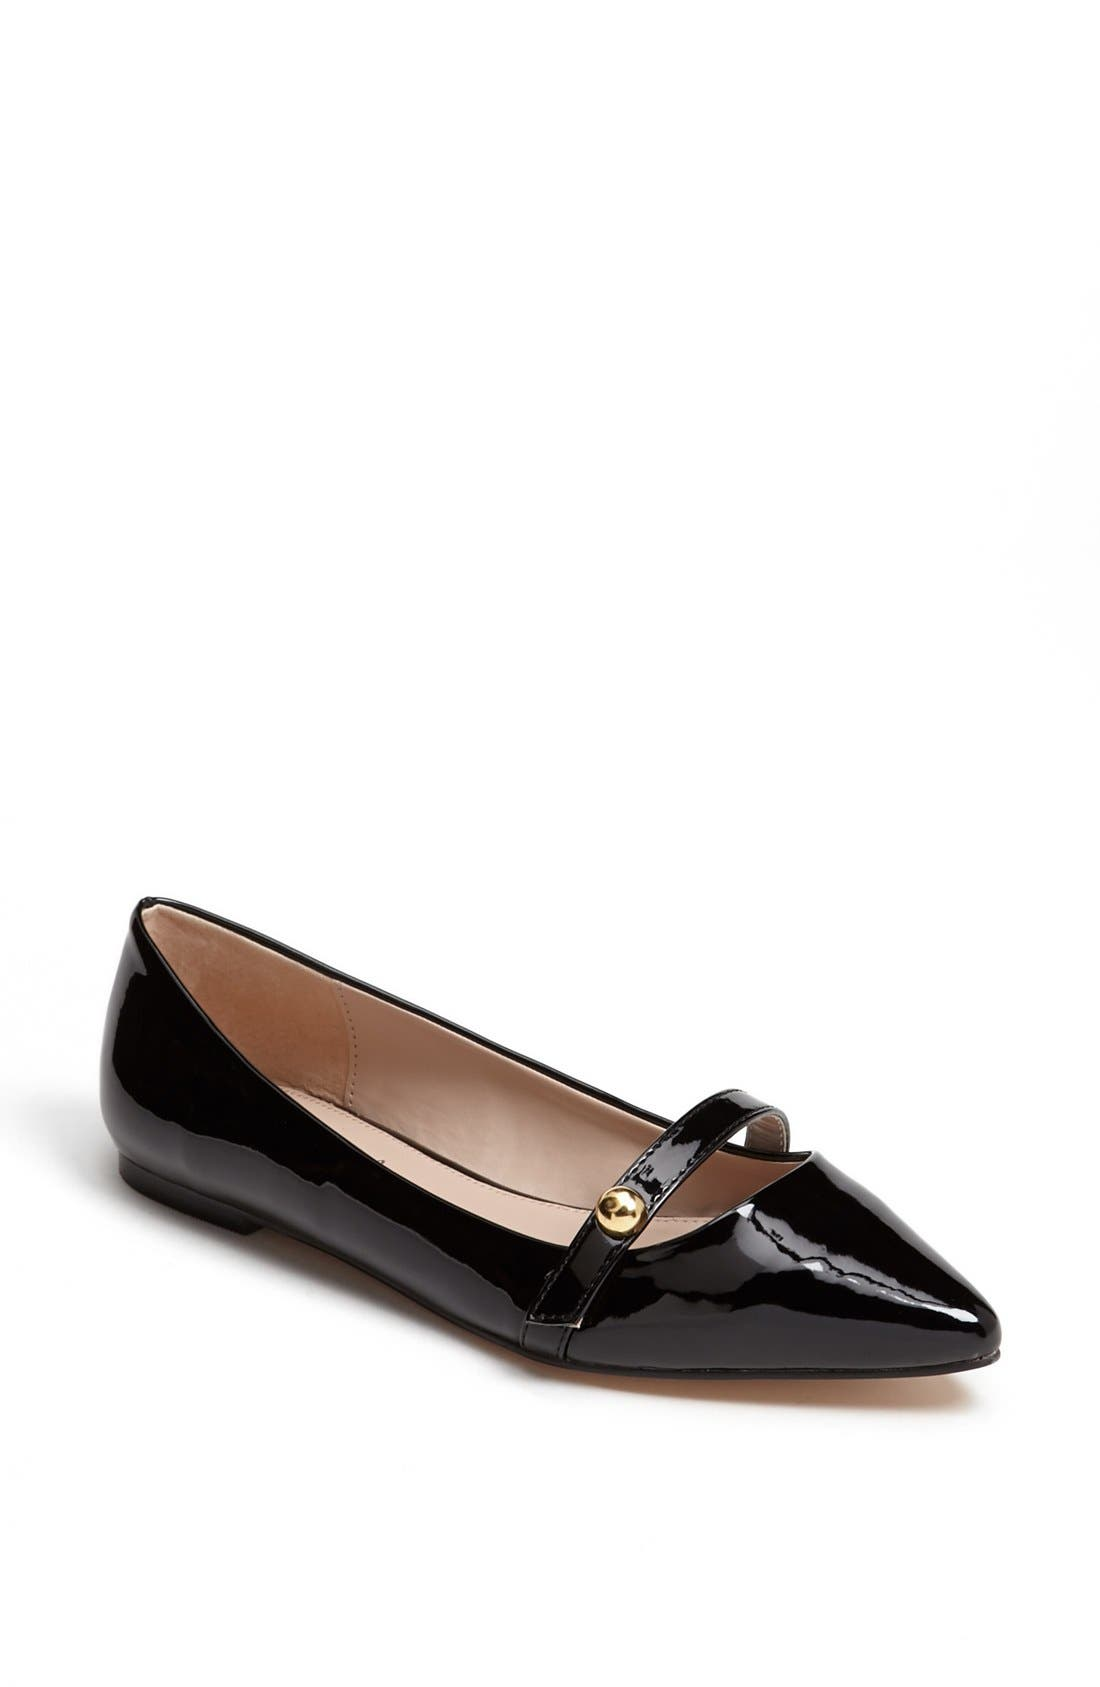 Main Image - Carvela Kurt Geiger 'Hanny' Pointed Toe Flat